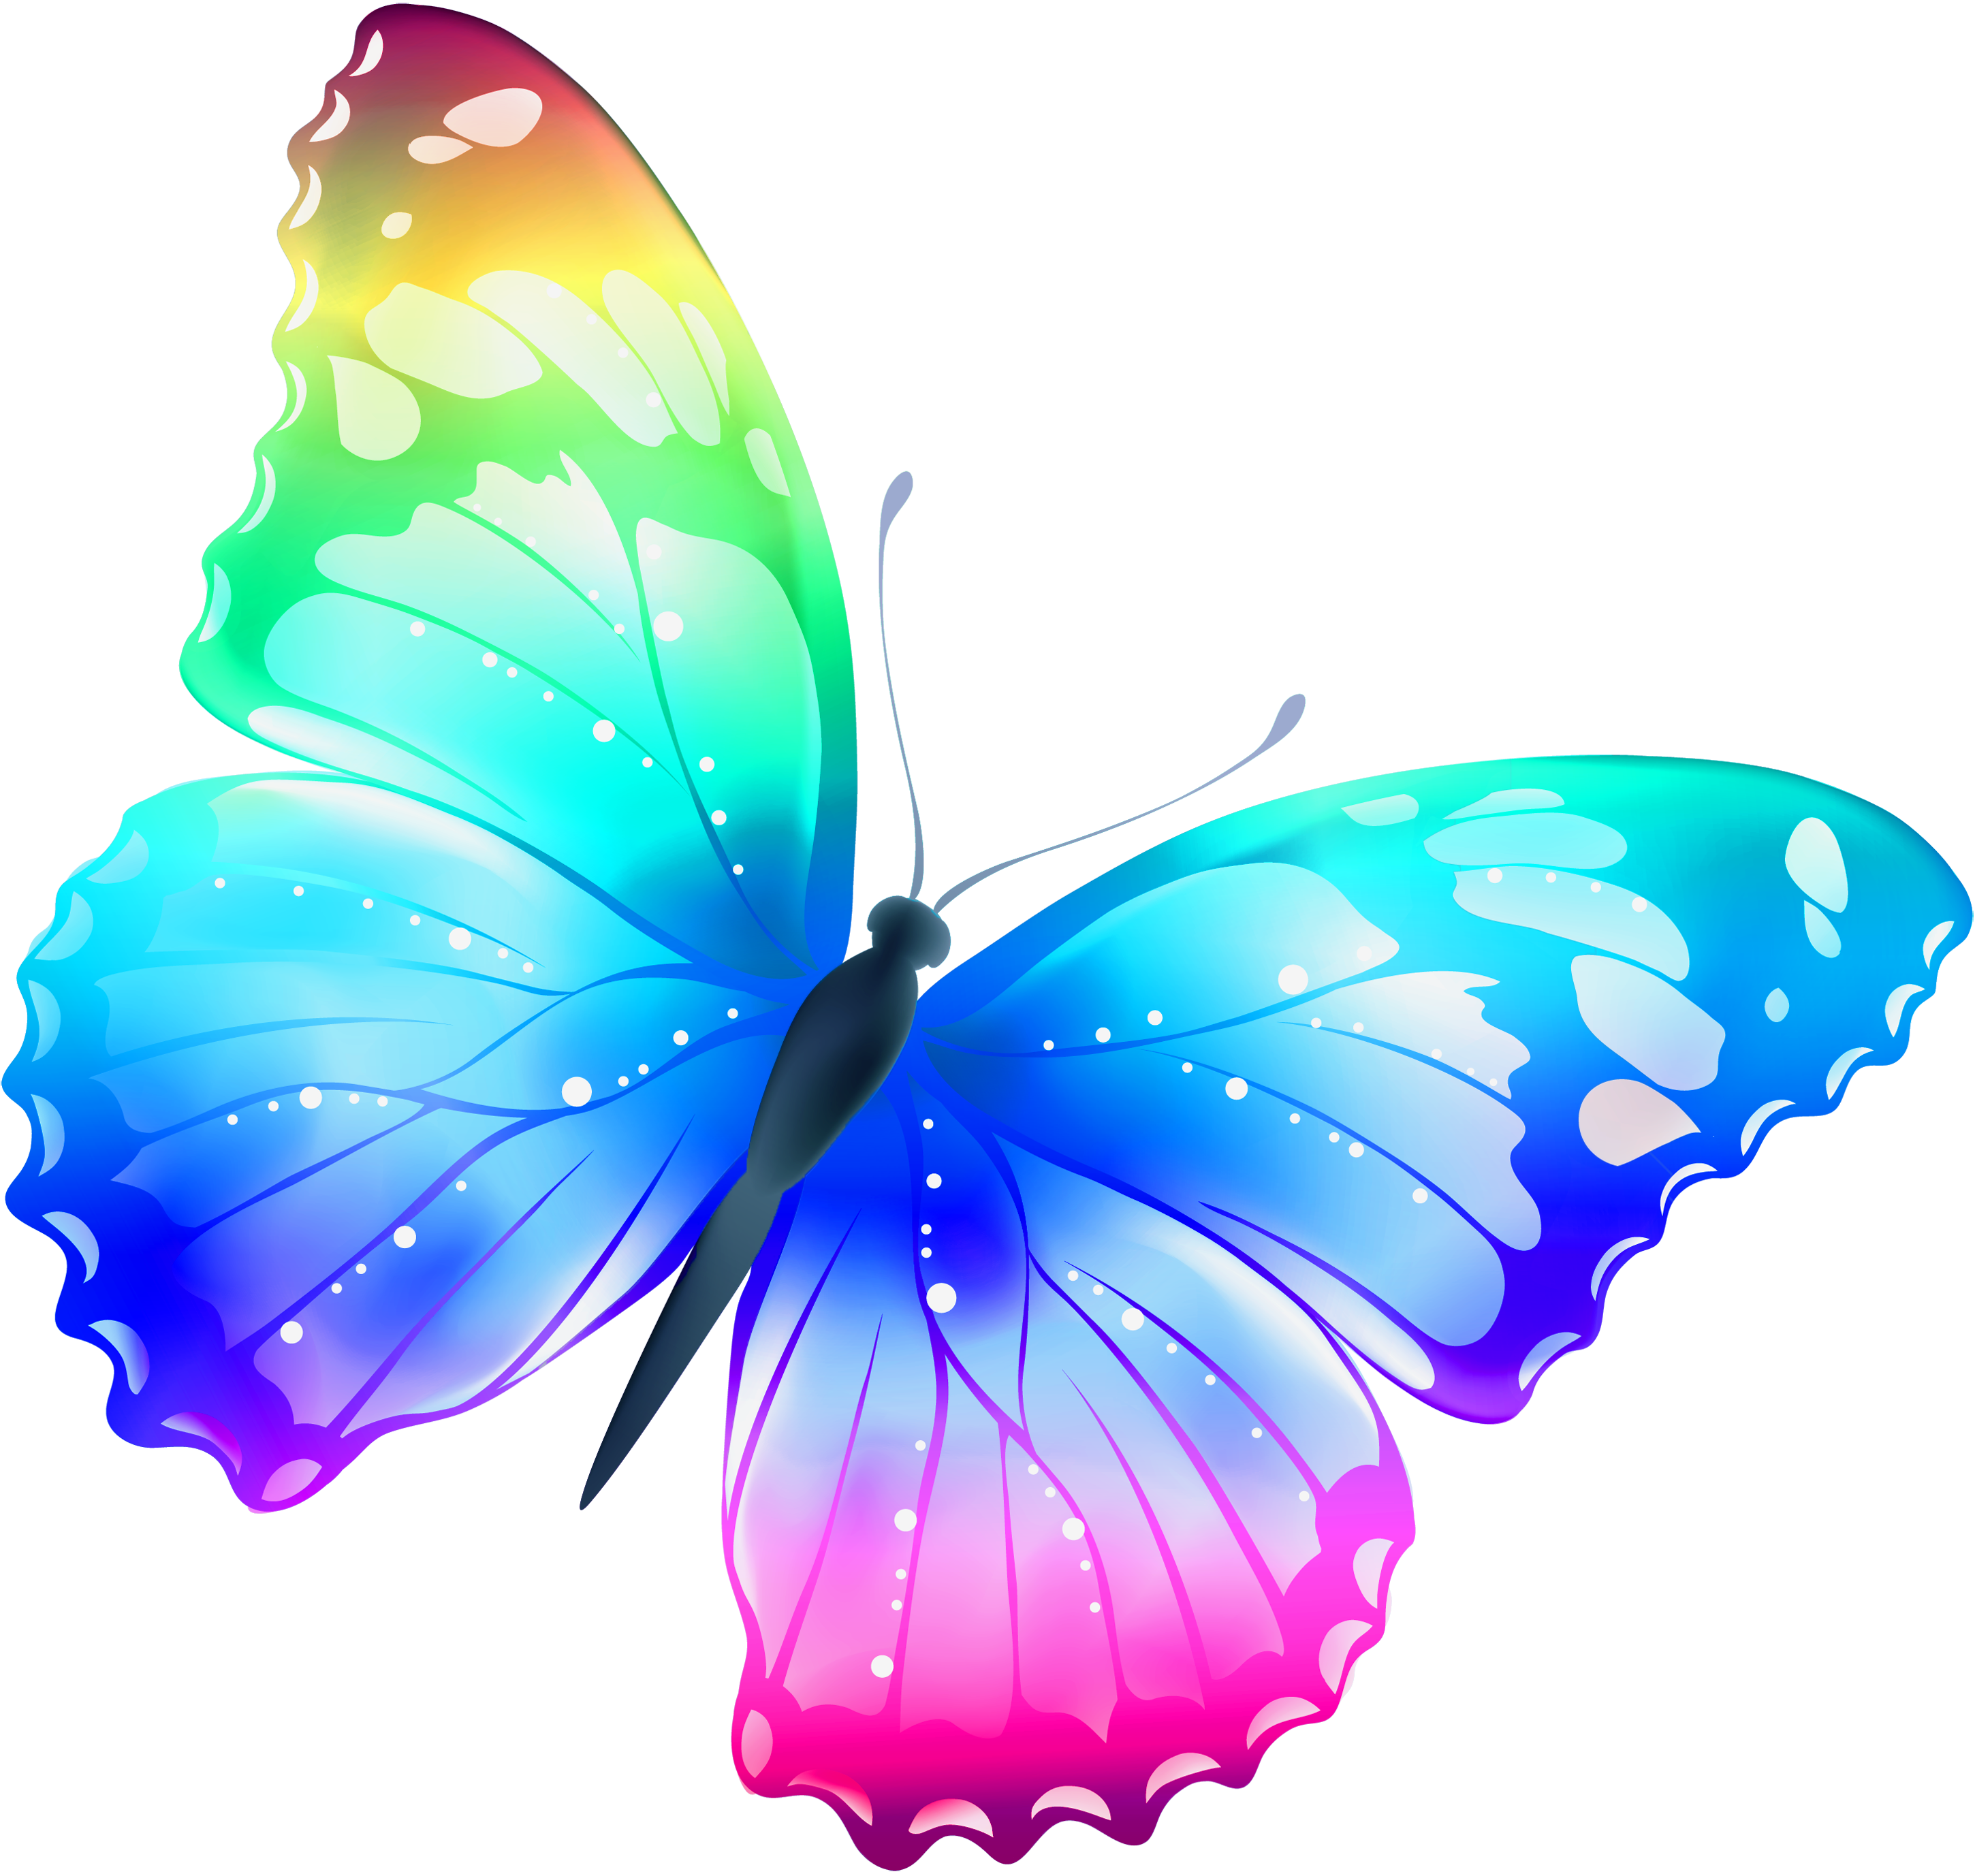 Butterflies png transparent. Large multi color butterfly